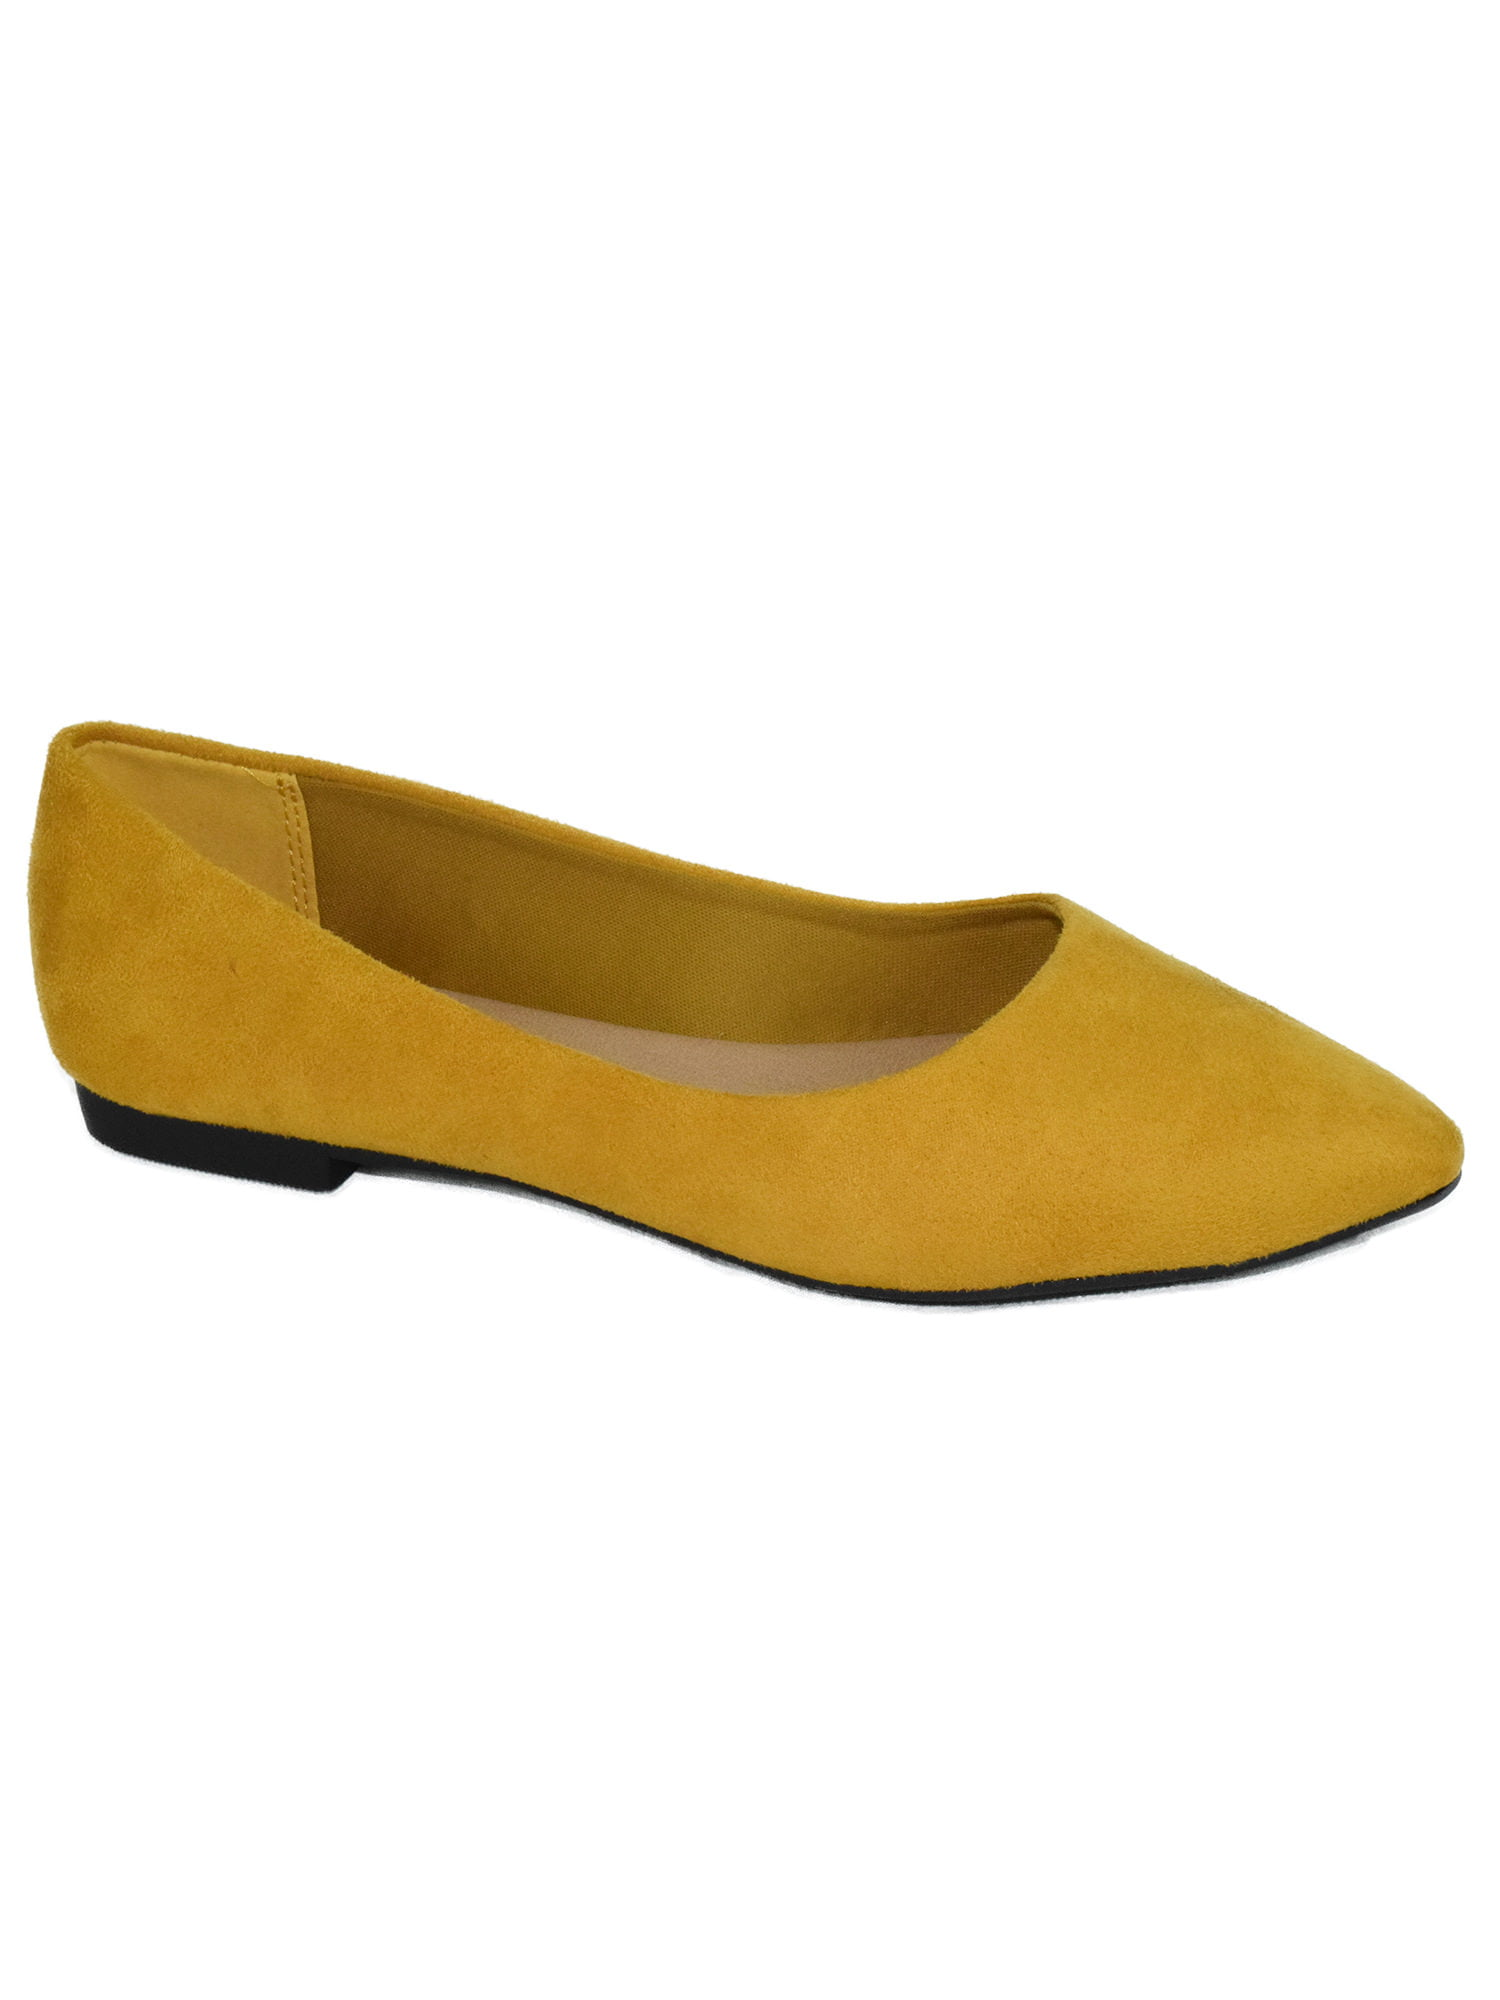 Hold Yellow Mustard Suede